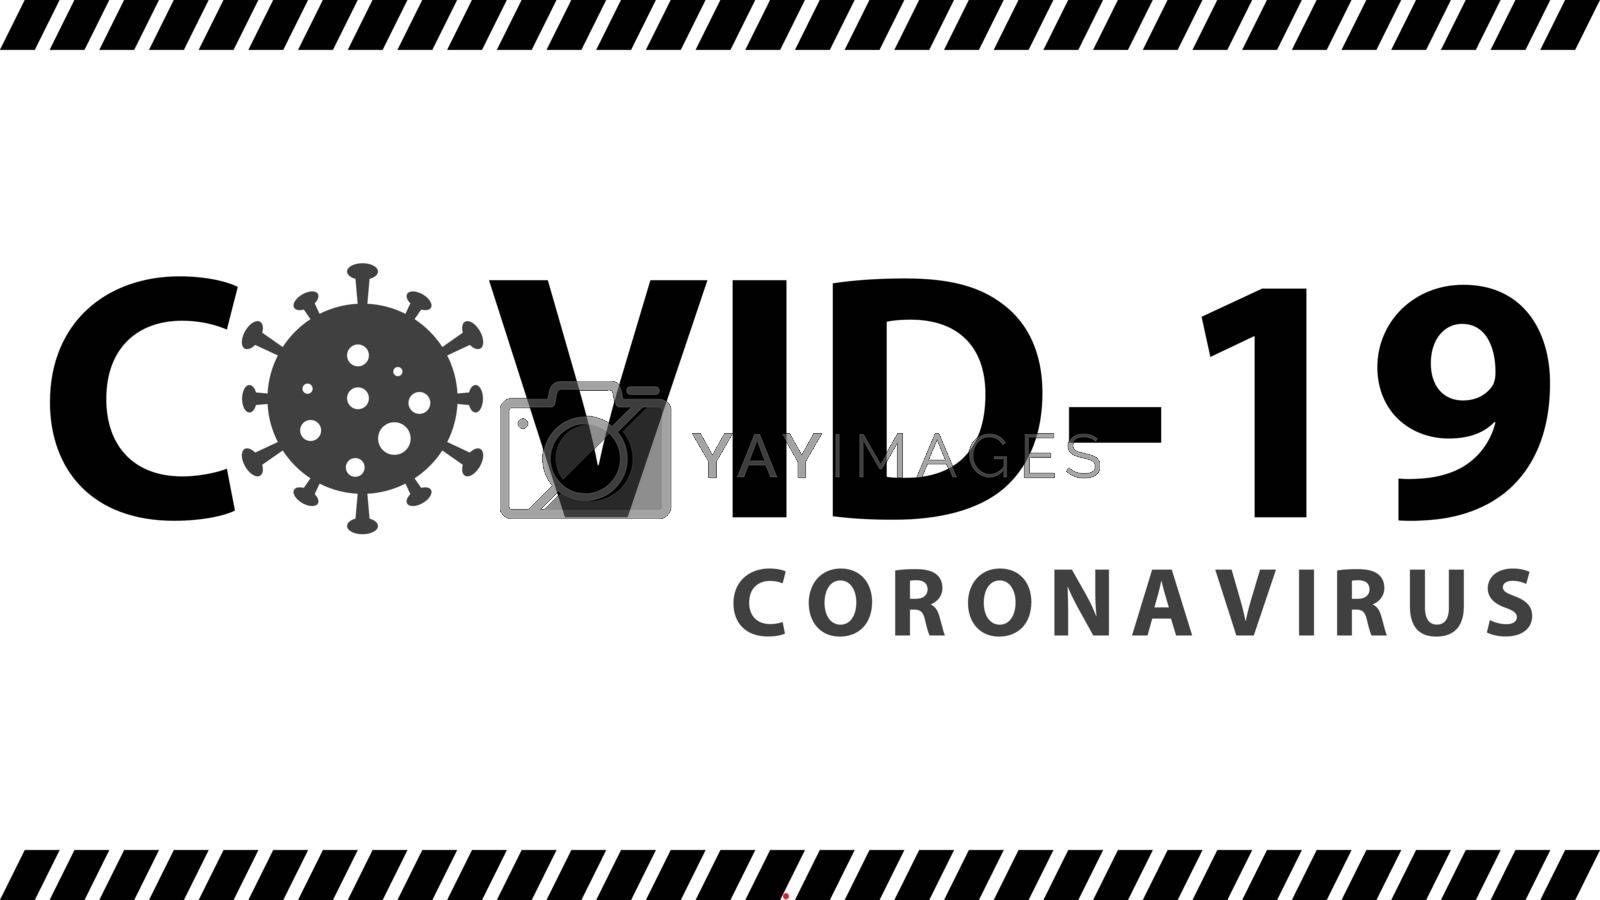 Covid-19 coronavirus pandemic outbreak minimal black and white banner. Stay at home quarantine concept. Health care and medical vector.